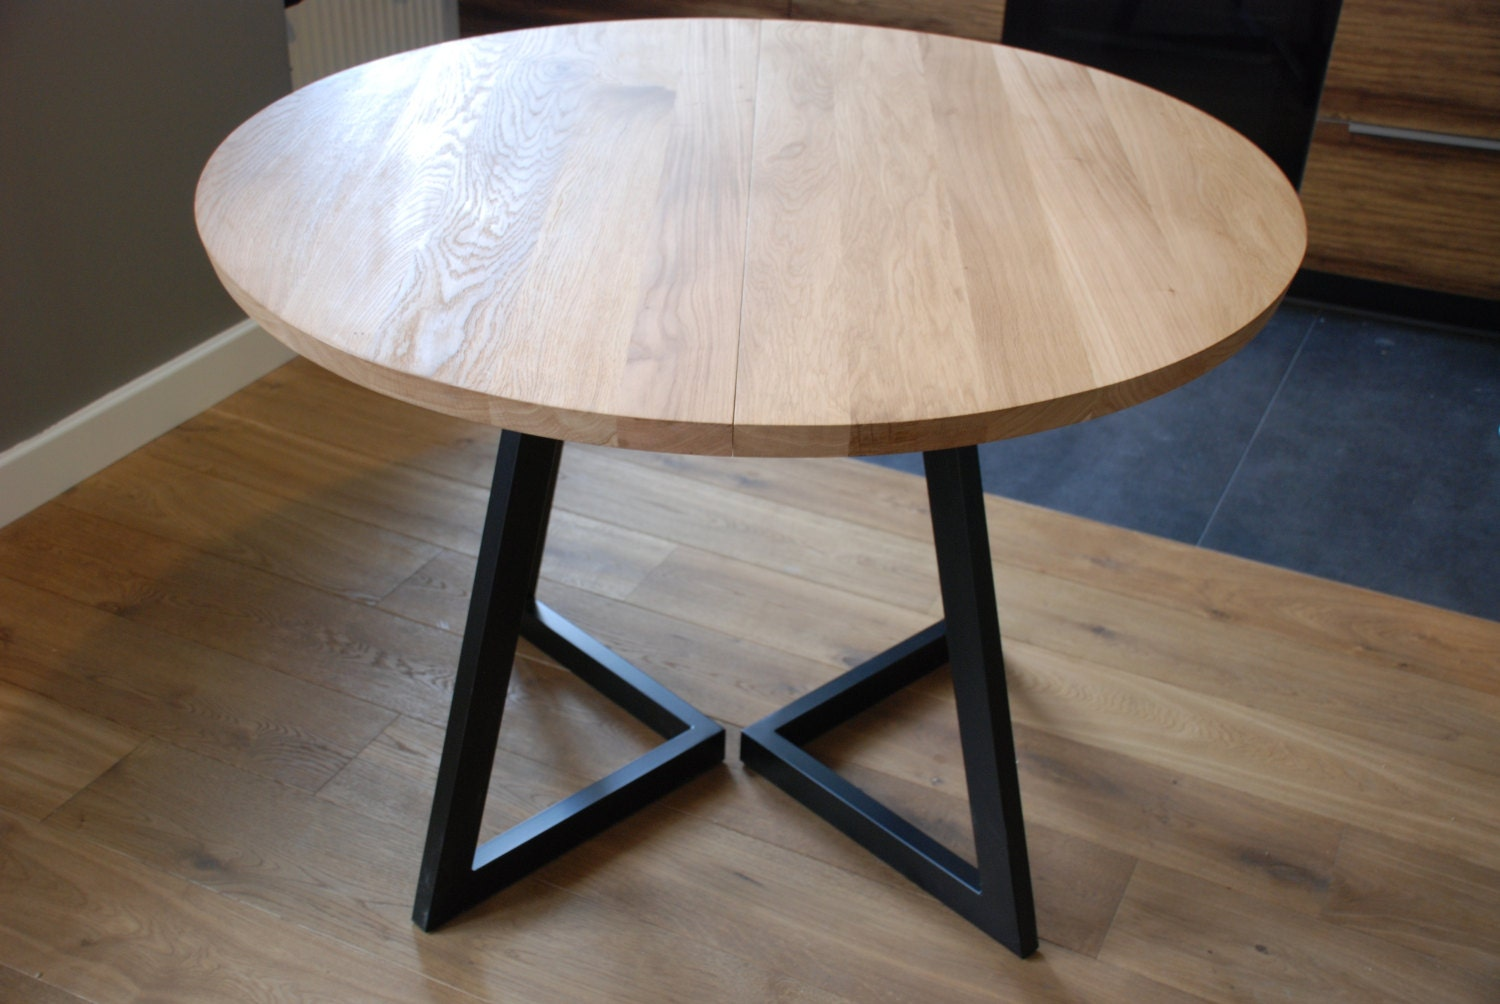 Extendable round table modern design steel and timber for Table ronde extensible